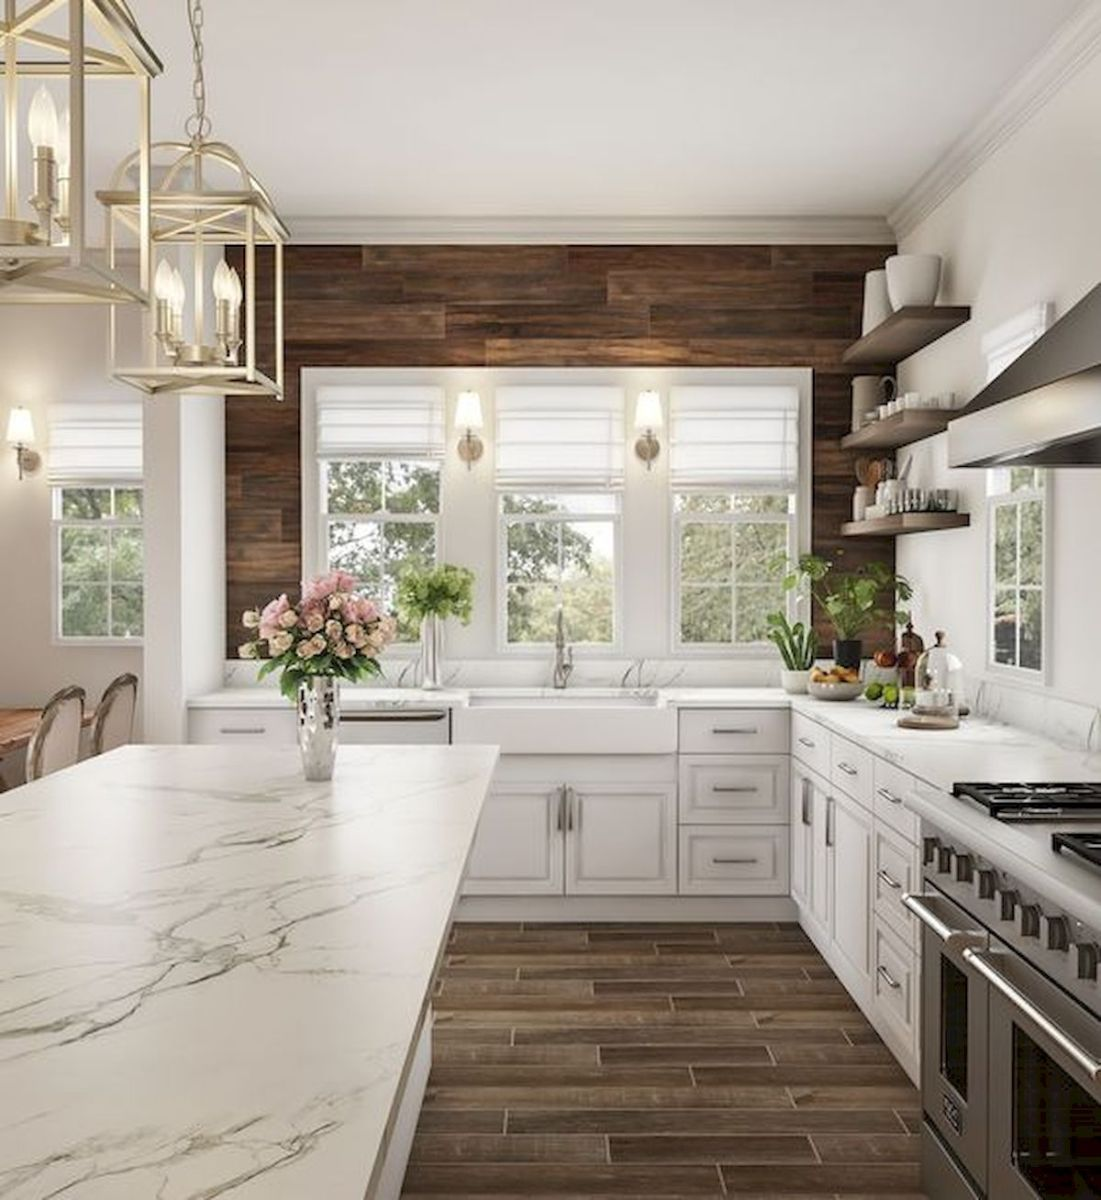 50 Best White Kitchen Design Ideas To Inspiring Your Kitchen (9) - CoachDecor.com